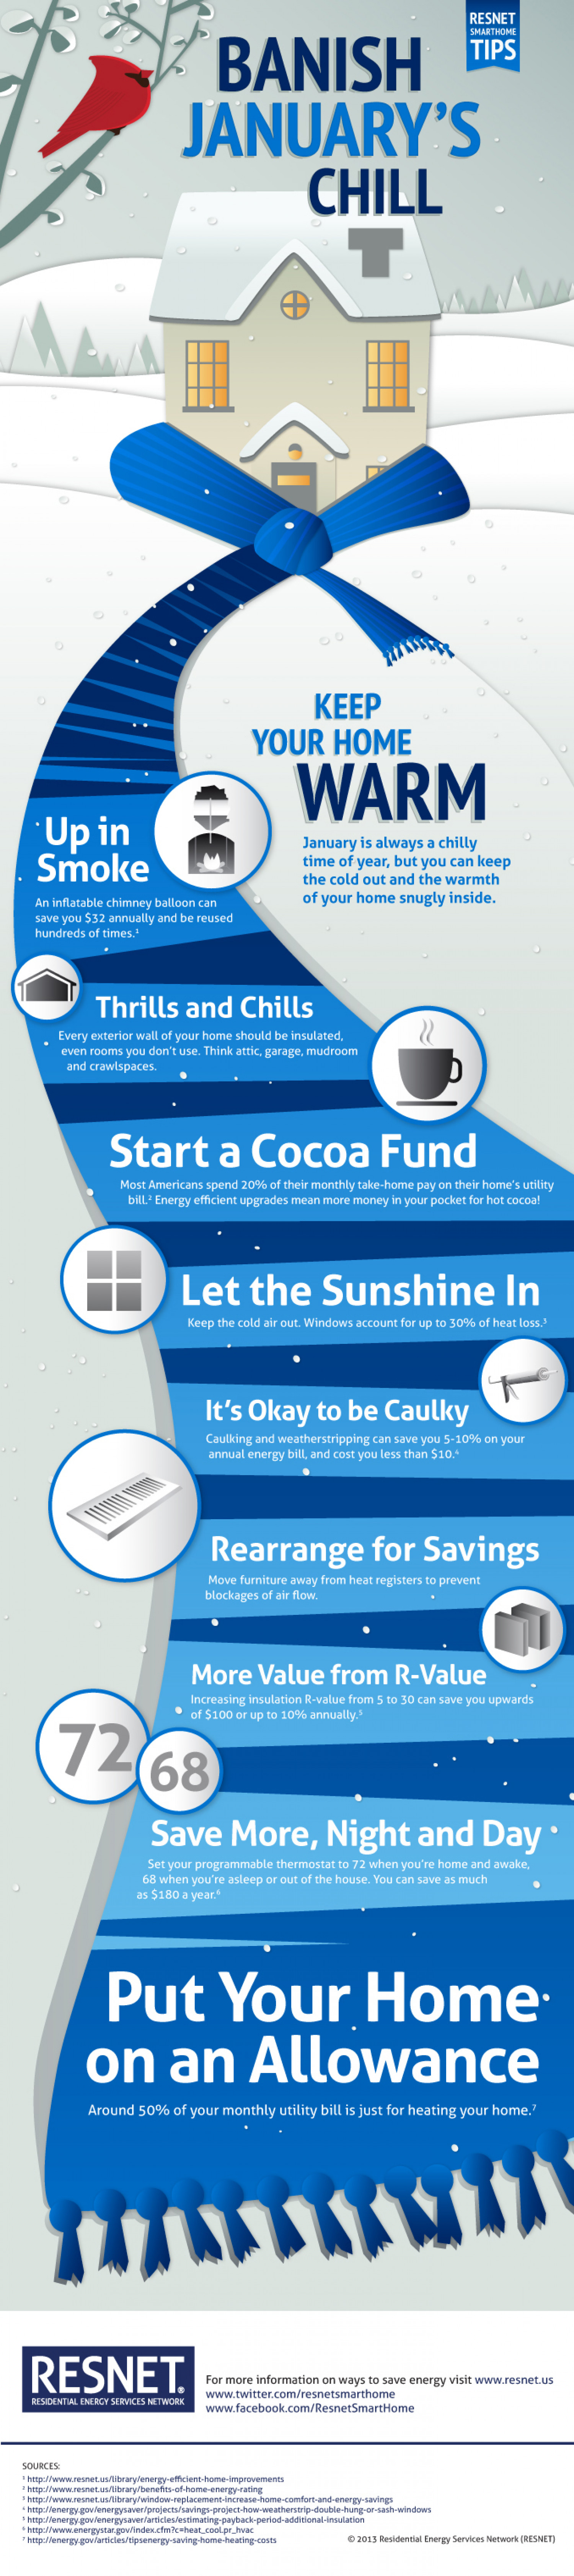 Banish January's Chill Infographic